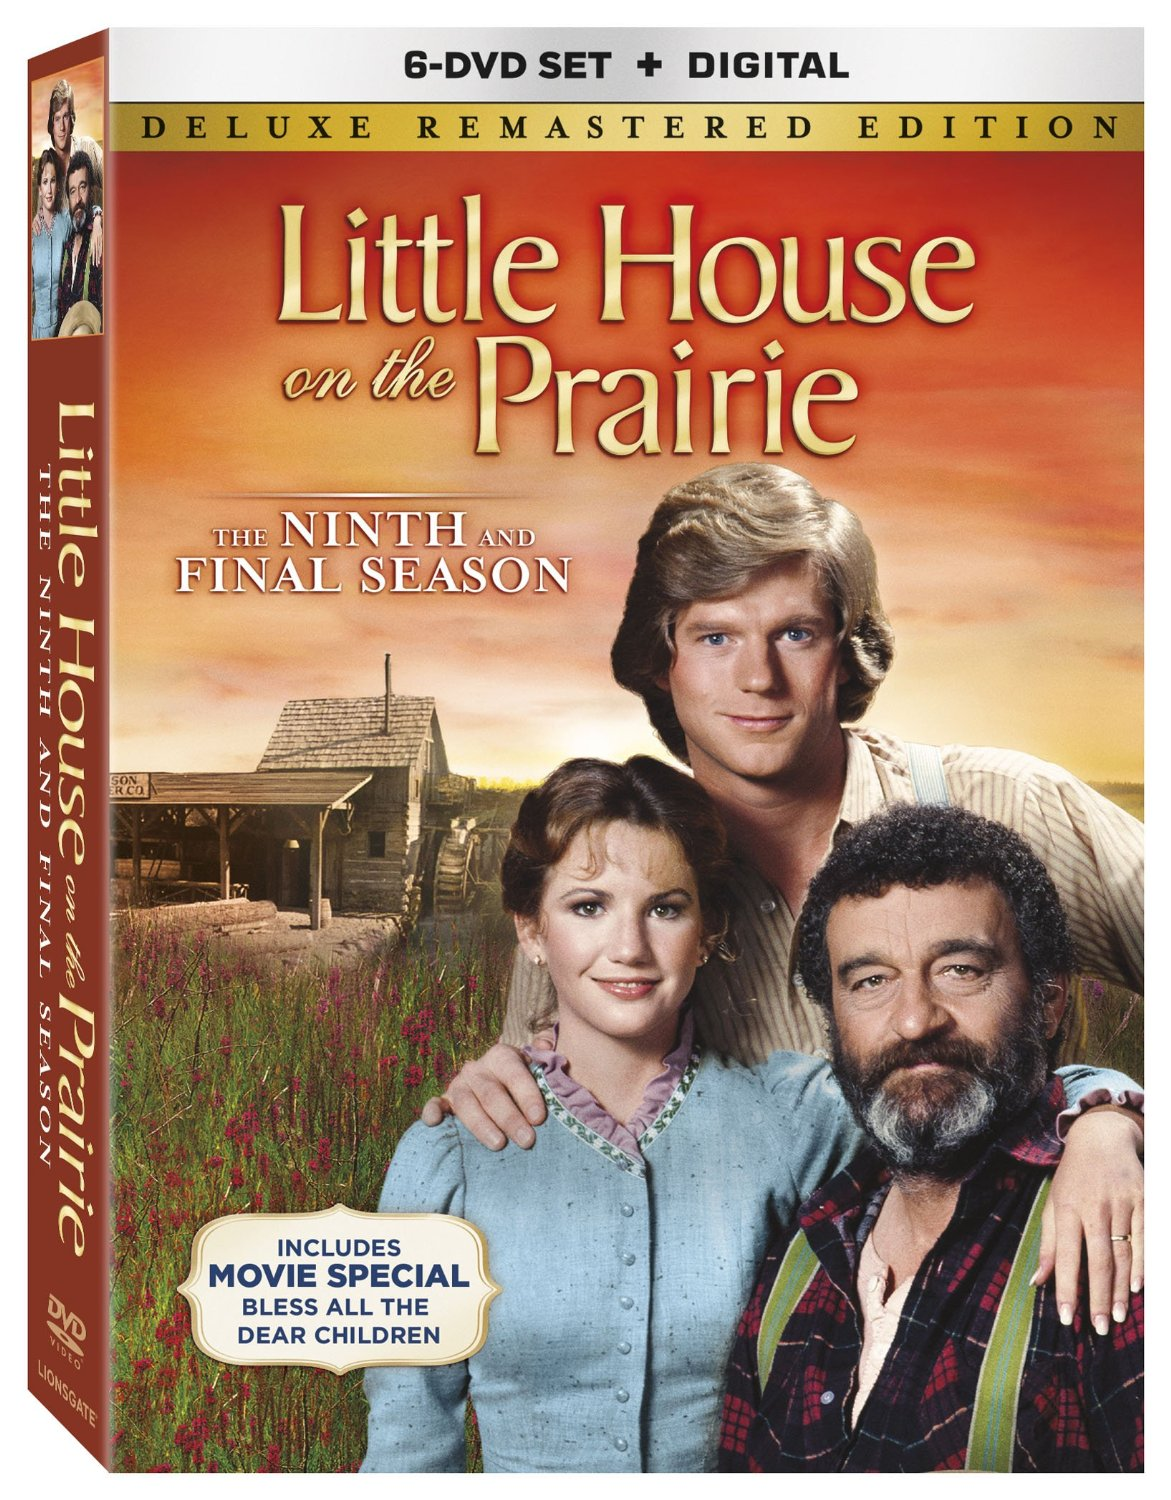 Tempting Last Time This Little House On Prairie Movie Free Online Little House On Prairie Movie Online Little House On Little House On Prairie Closes Its Doors curbed Little House On The Prairie Movie